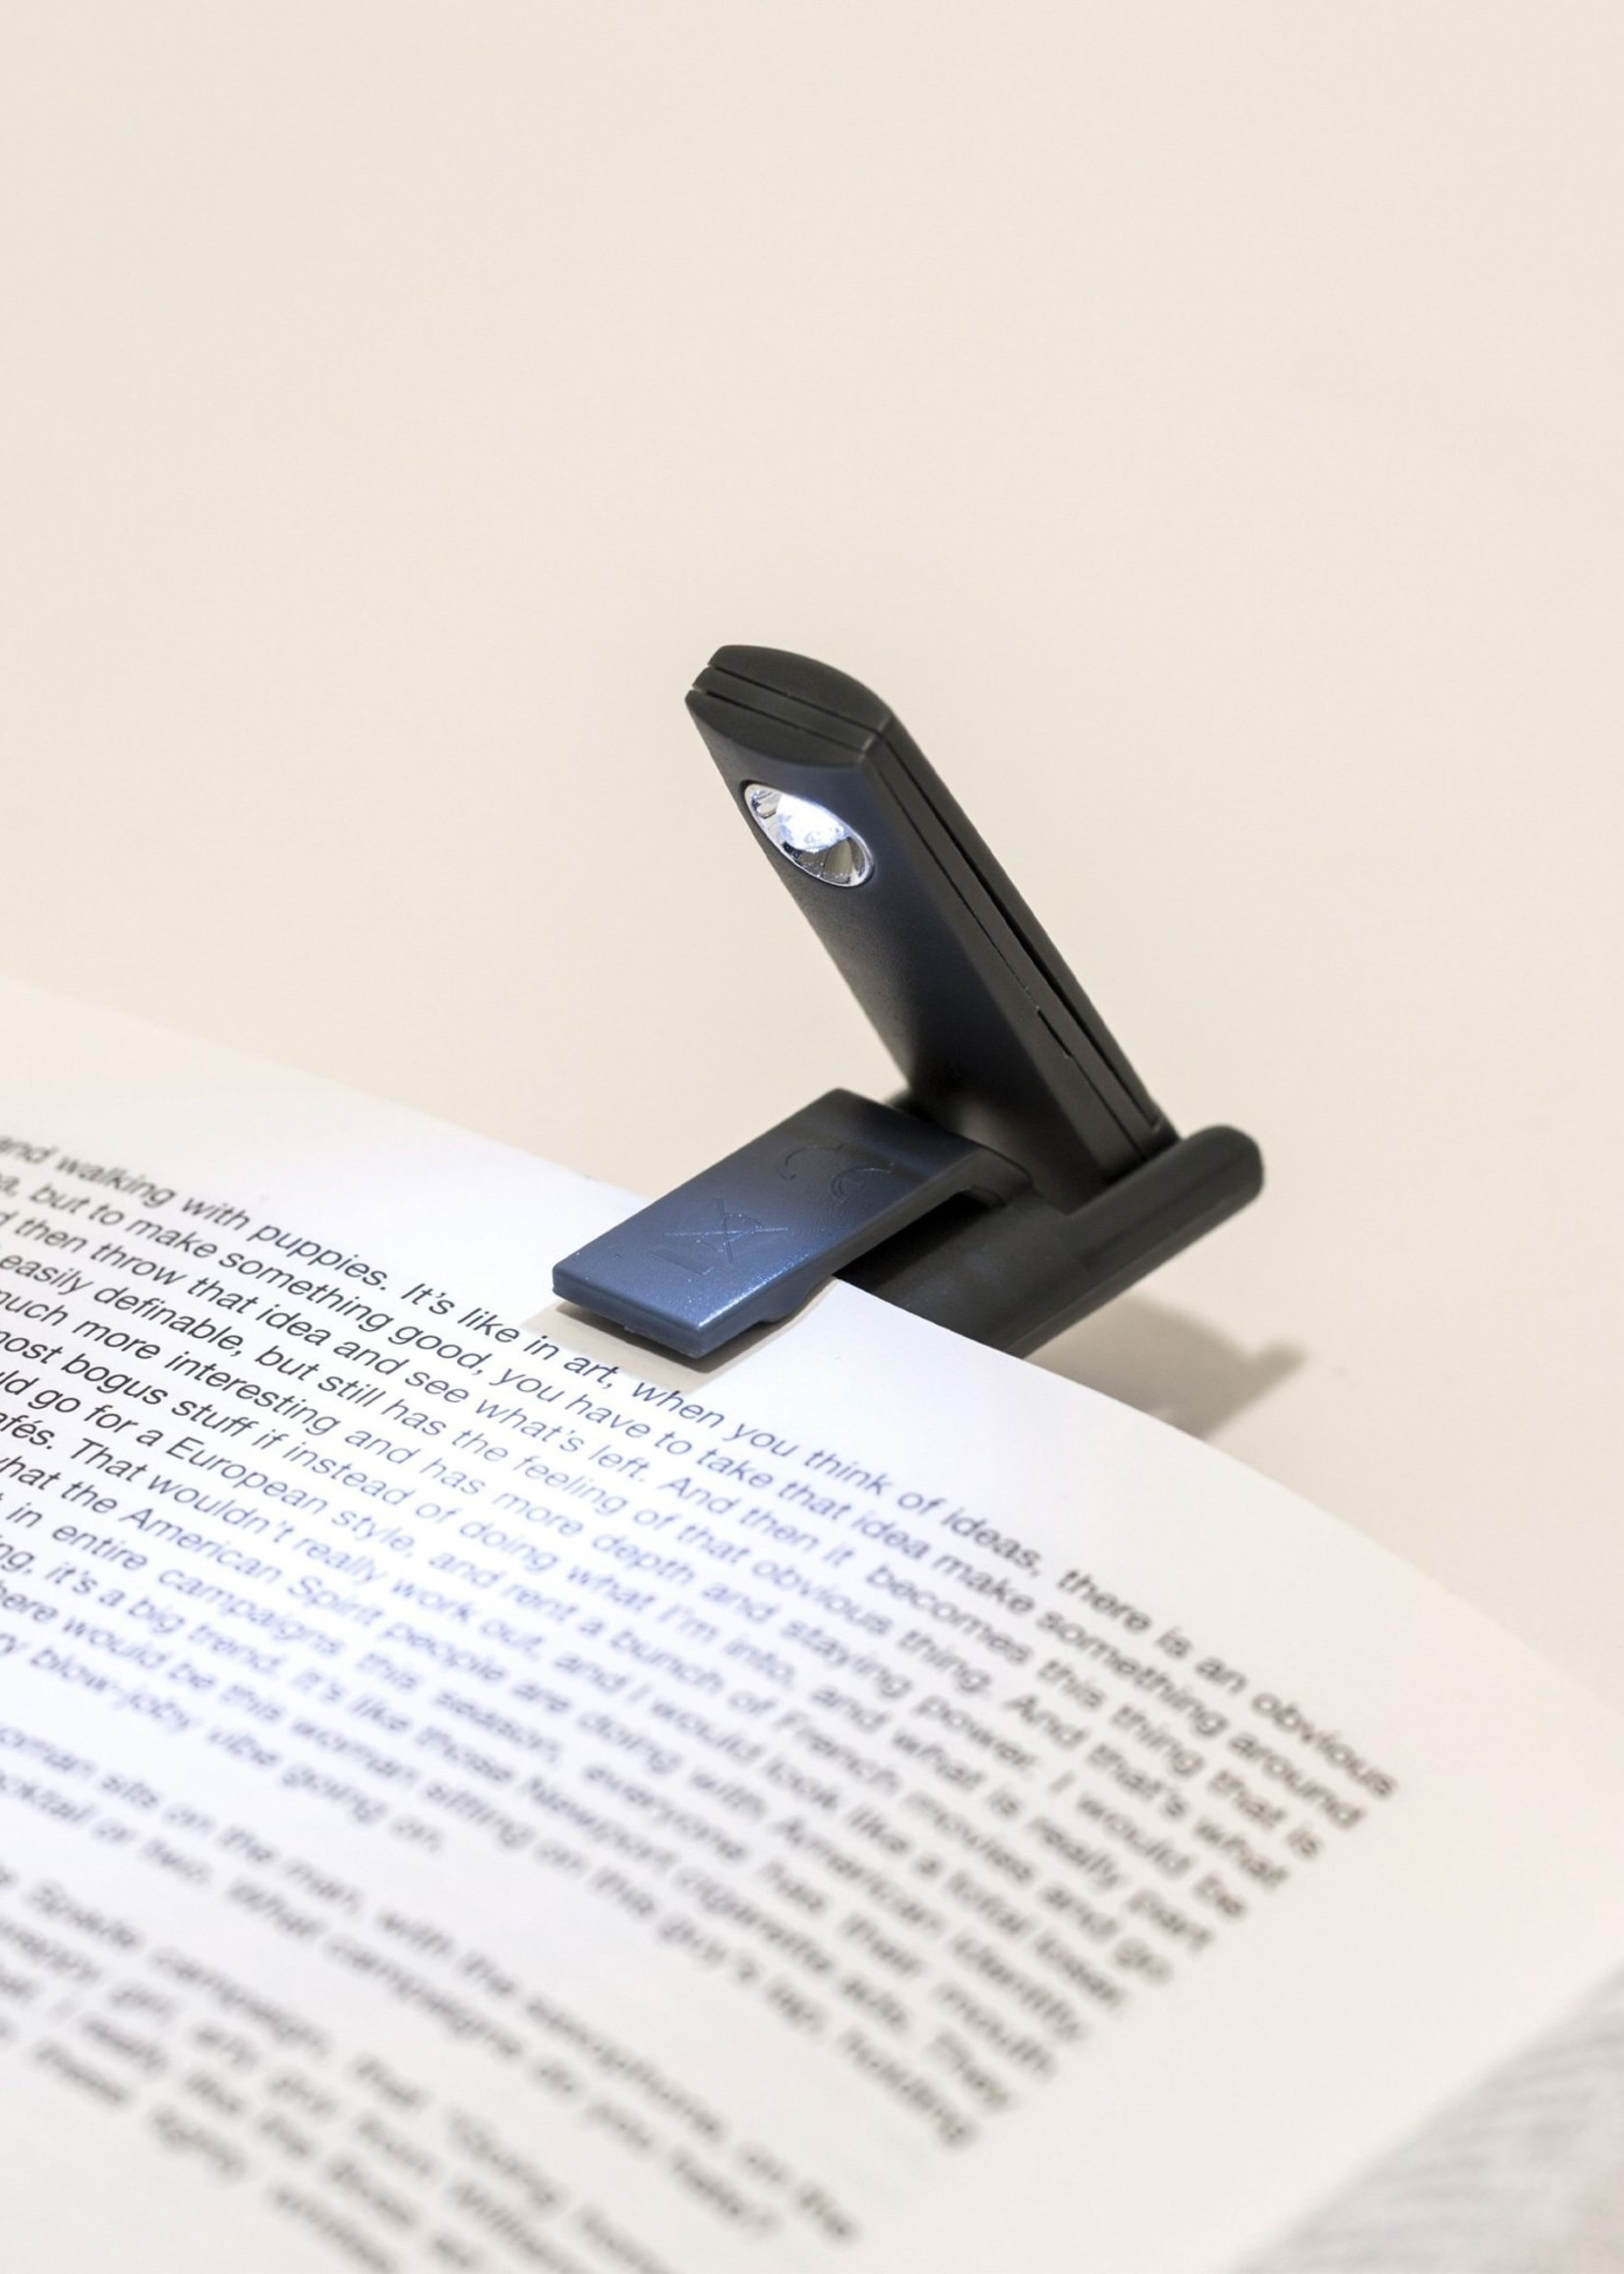 Kikkerland KIKKERLAND MINI FOLDING BOOK LIGHT